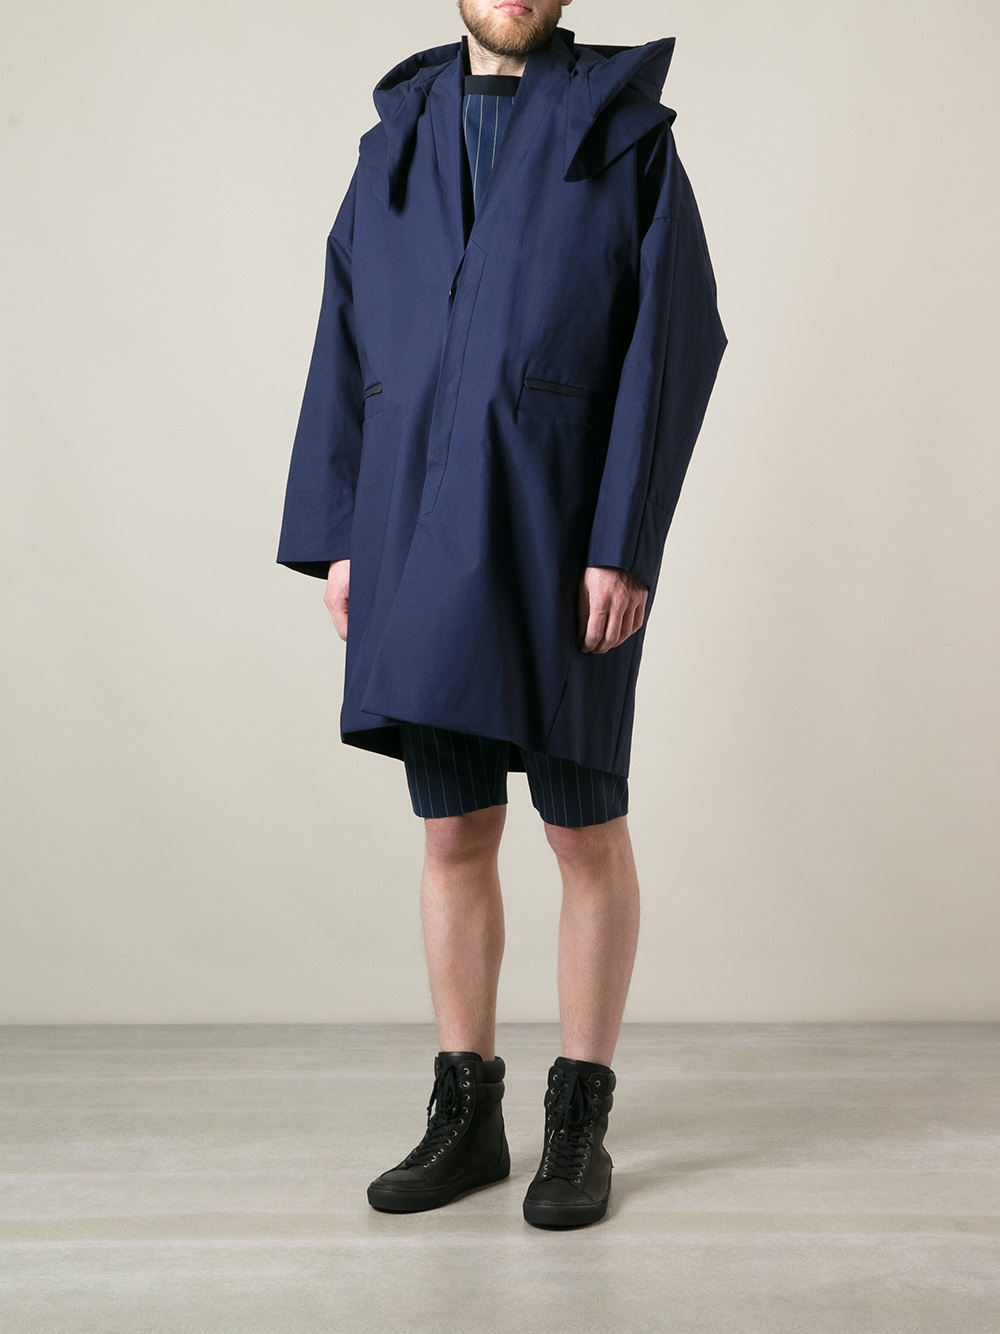 Juun.j Oversized Parka Coat in Blue for Men | Lyst